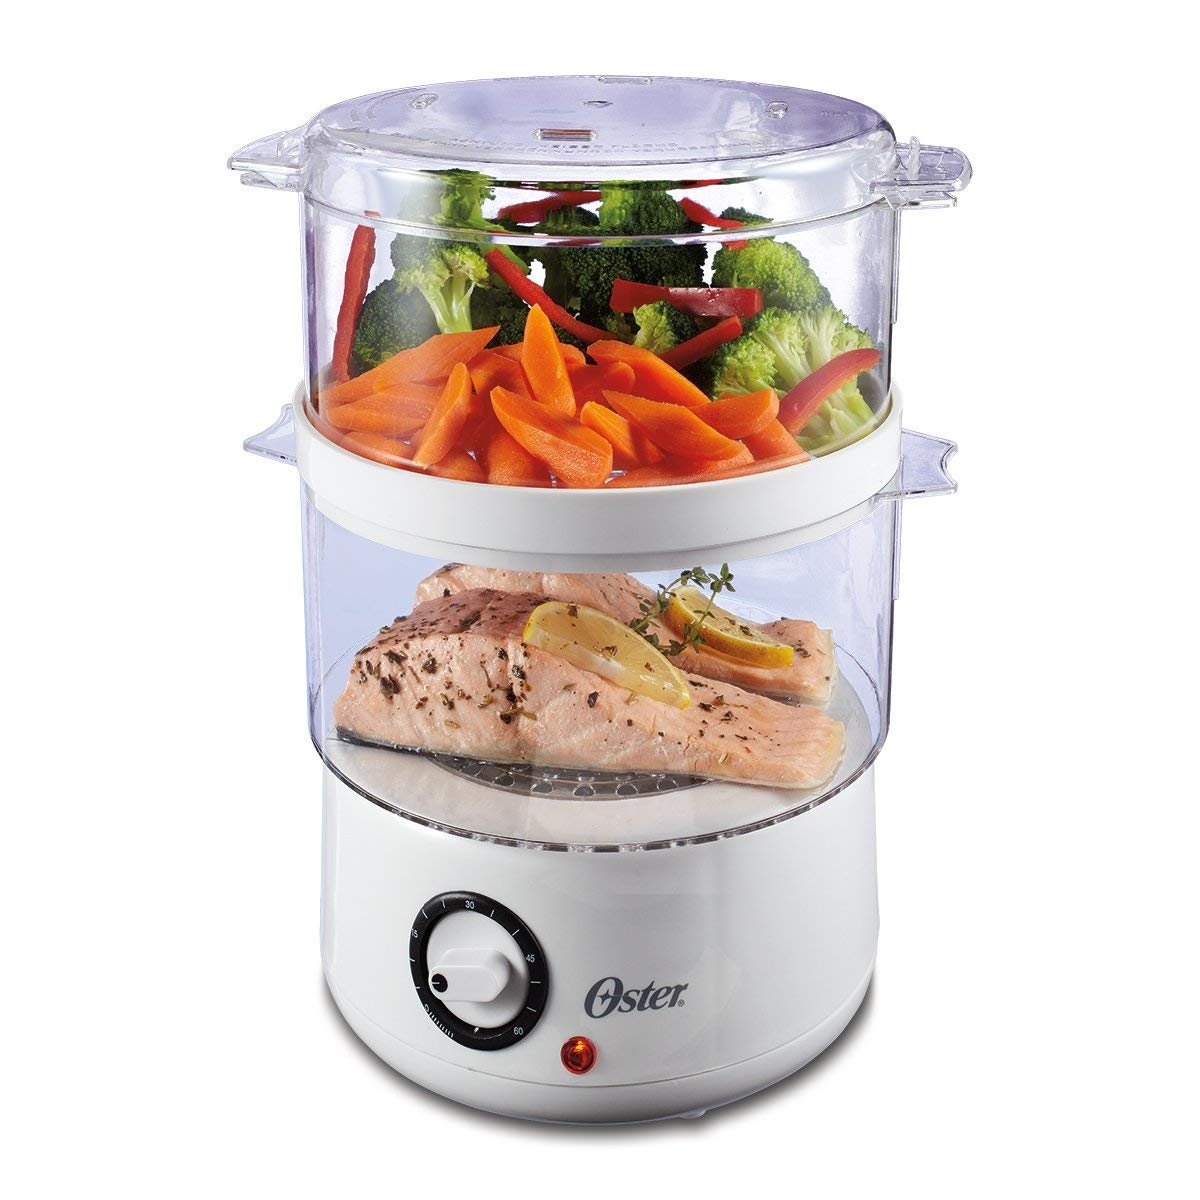 Oster Double Tiered Food Steamer, 5 Quart